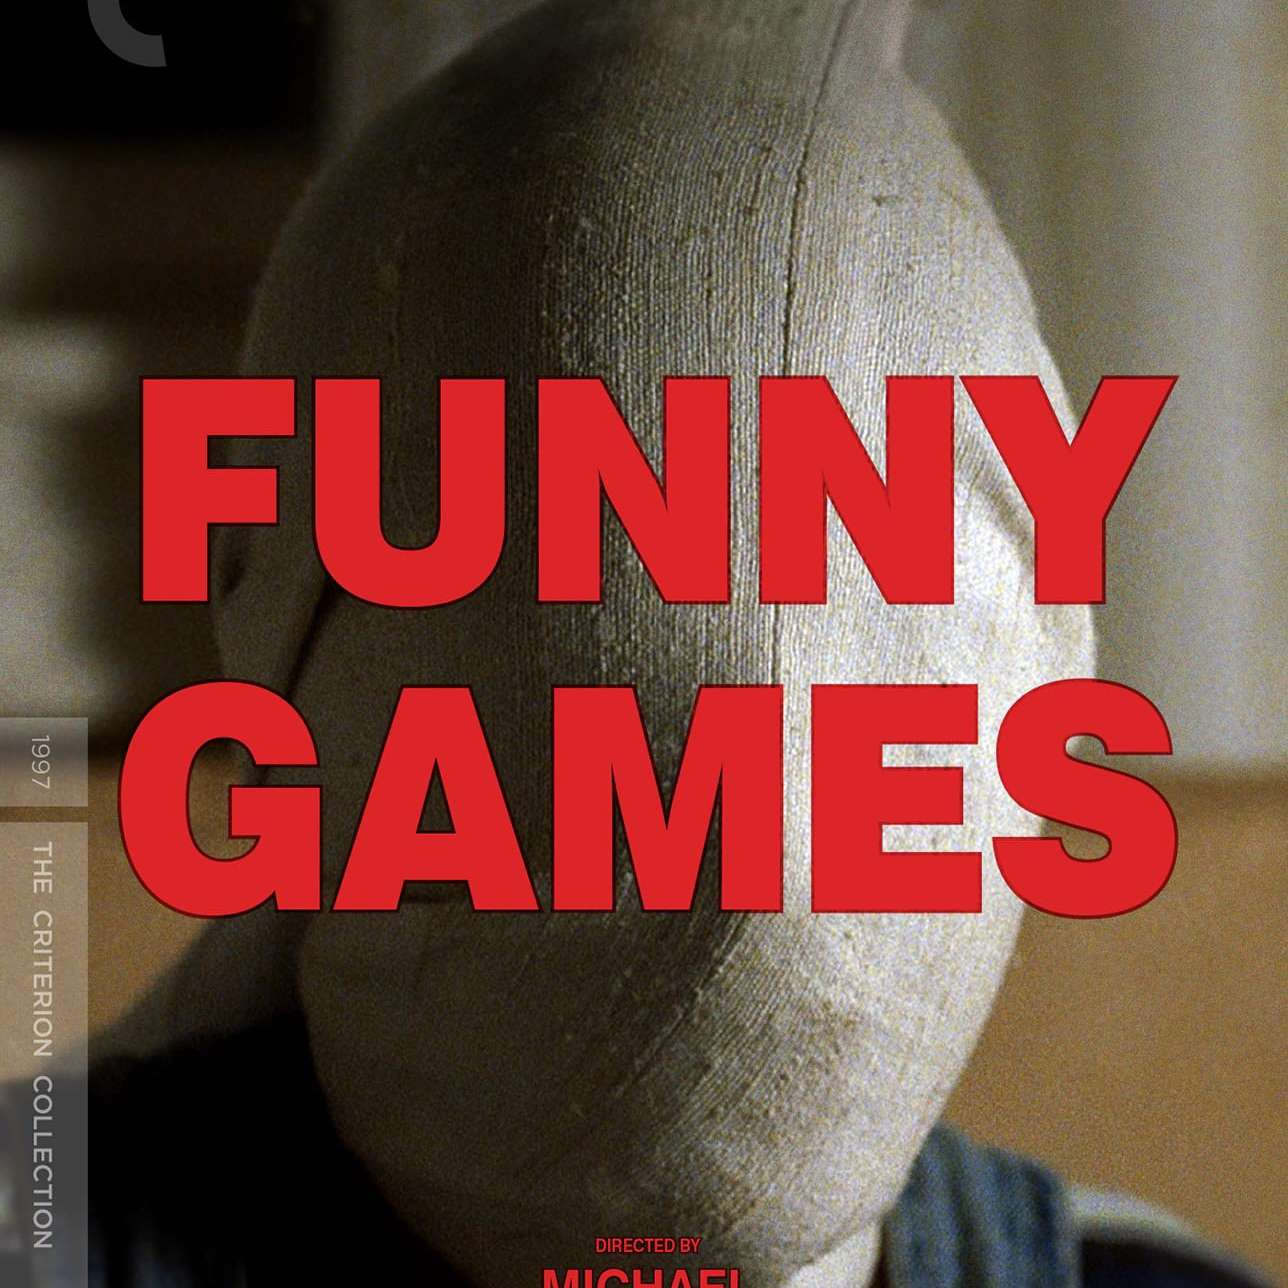 Funny Games (1997) movie.